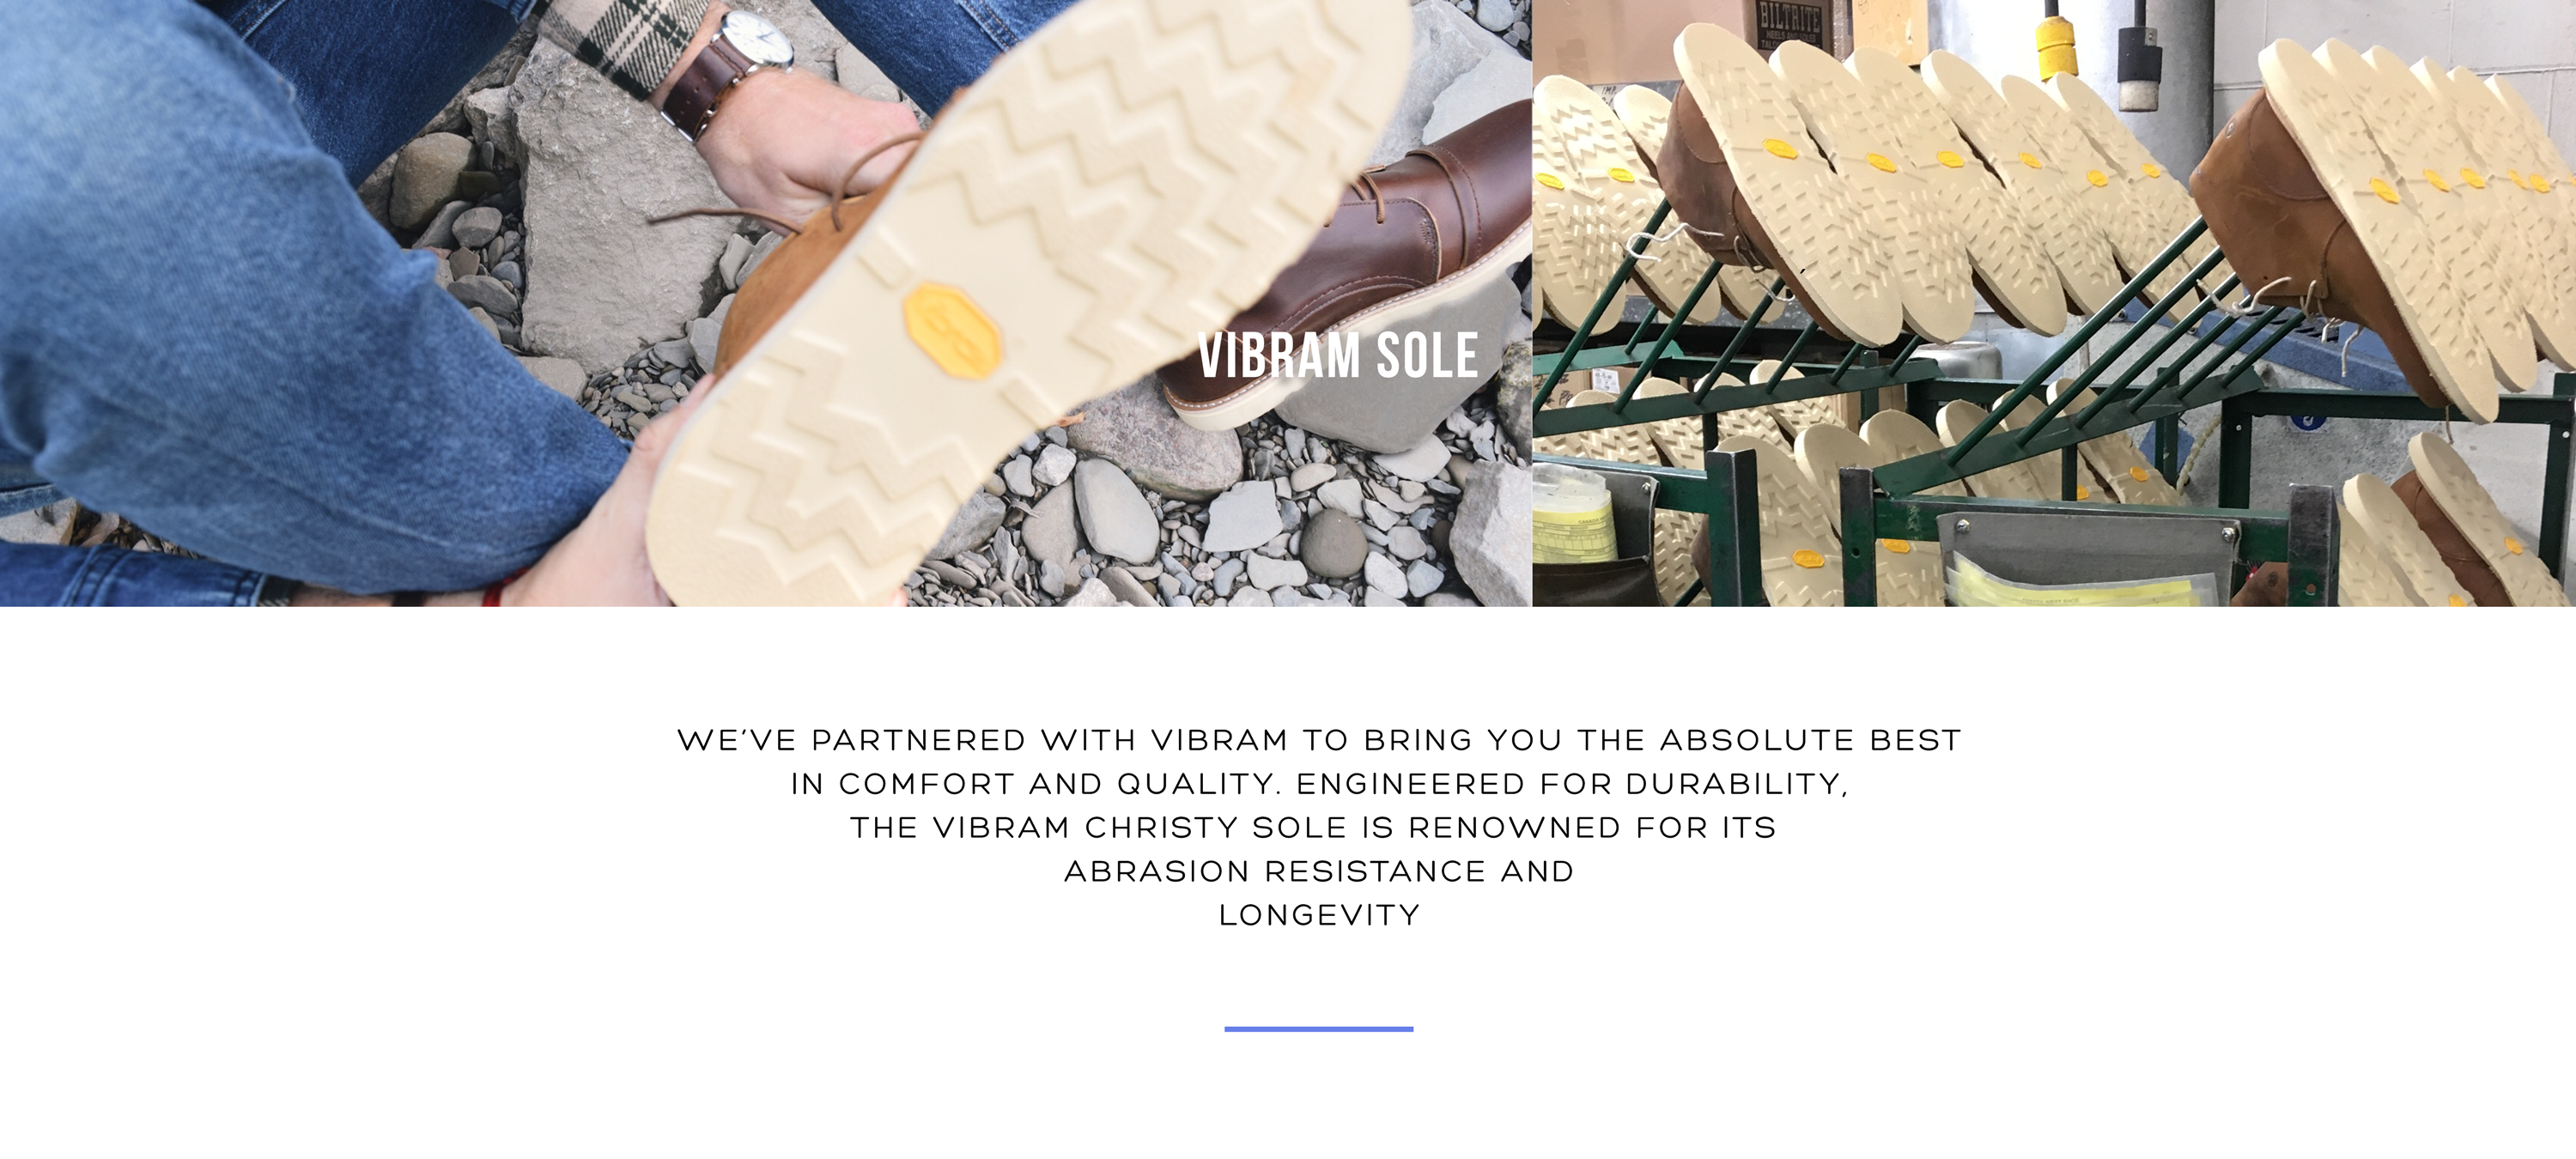 vibram sole goodyear welt handcrafted boots